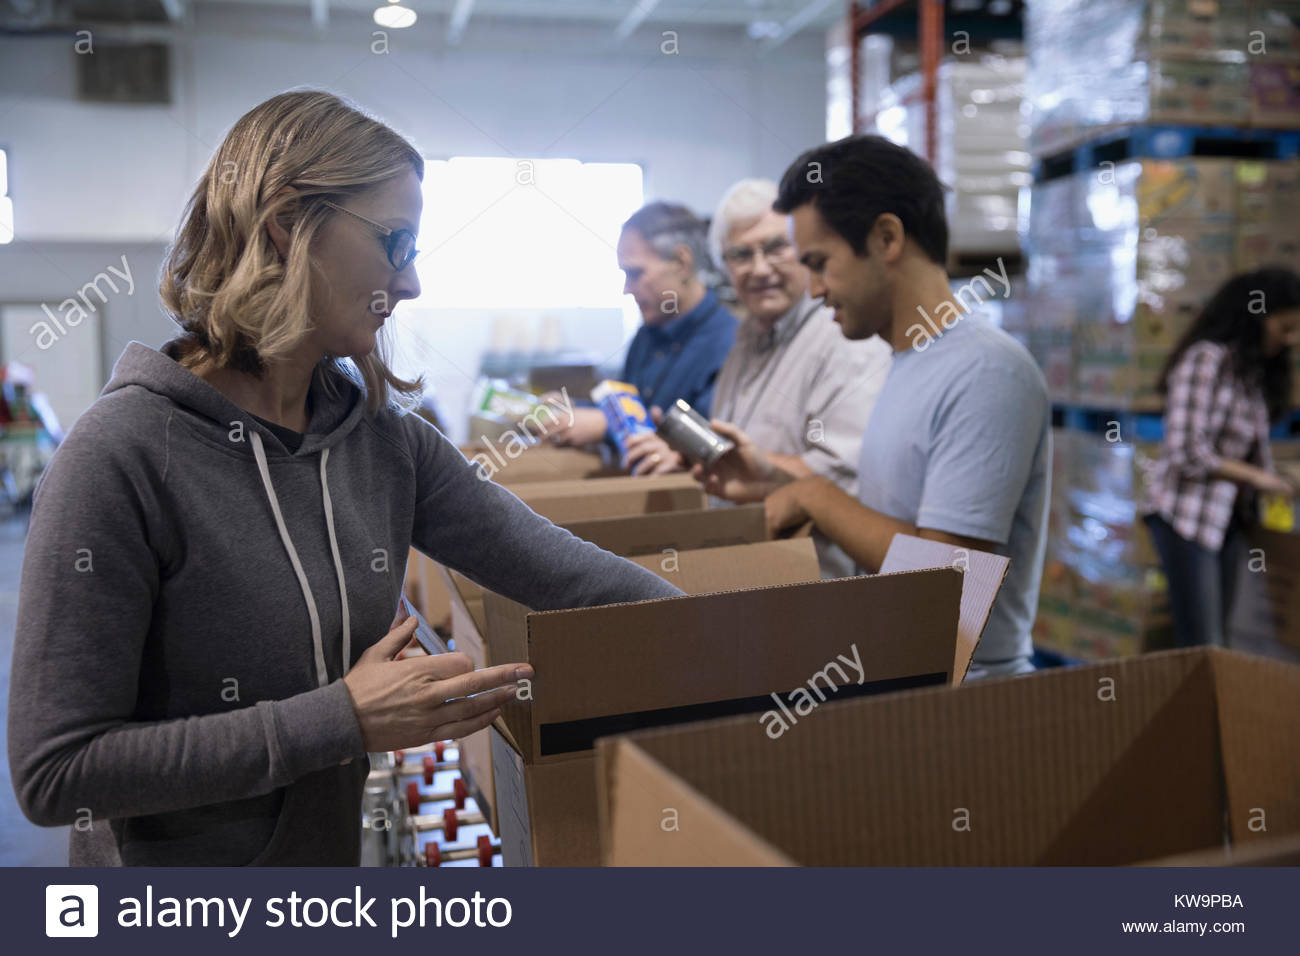 Female volunteer boxing canned food for food drive in warehouse - Stock Image